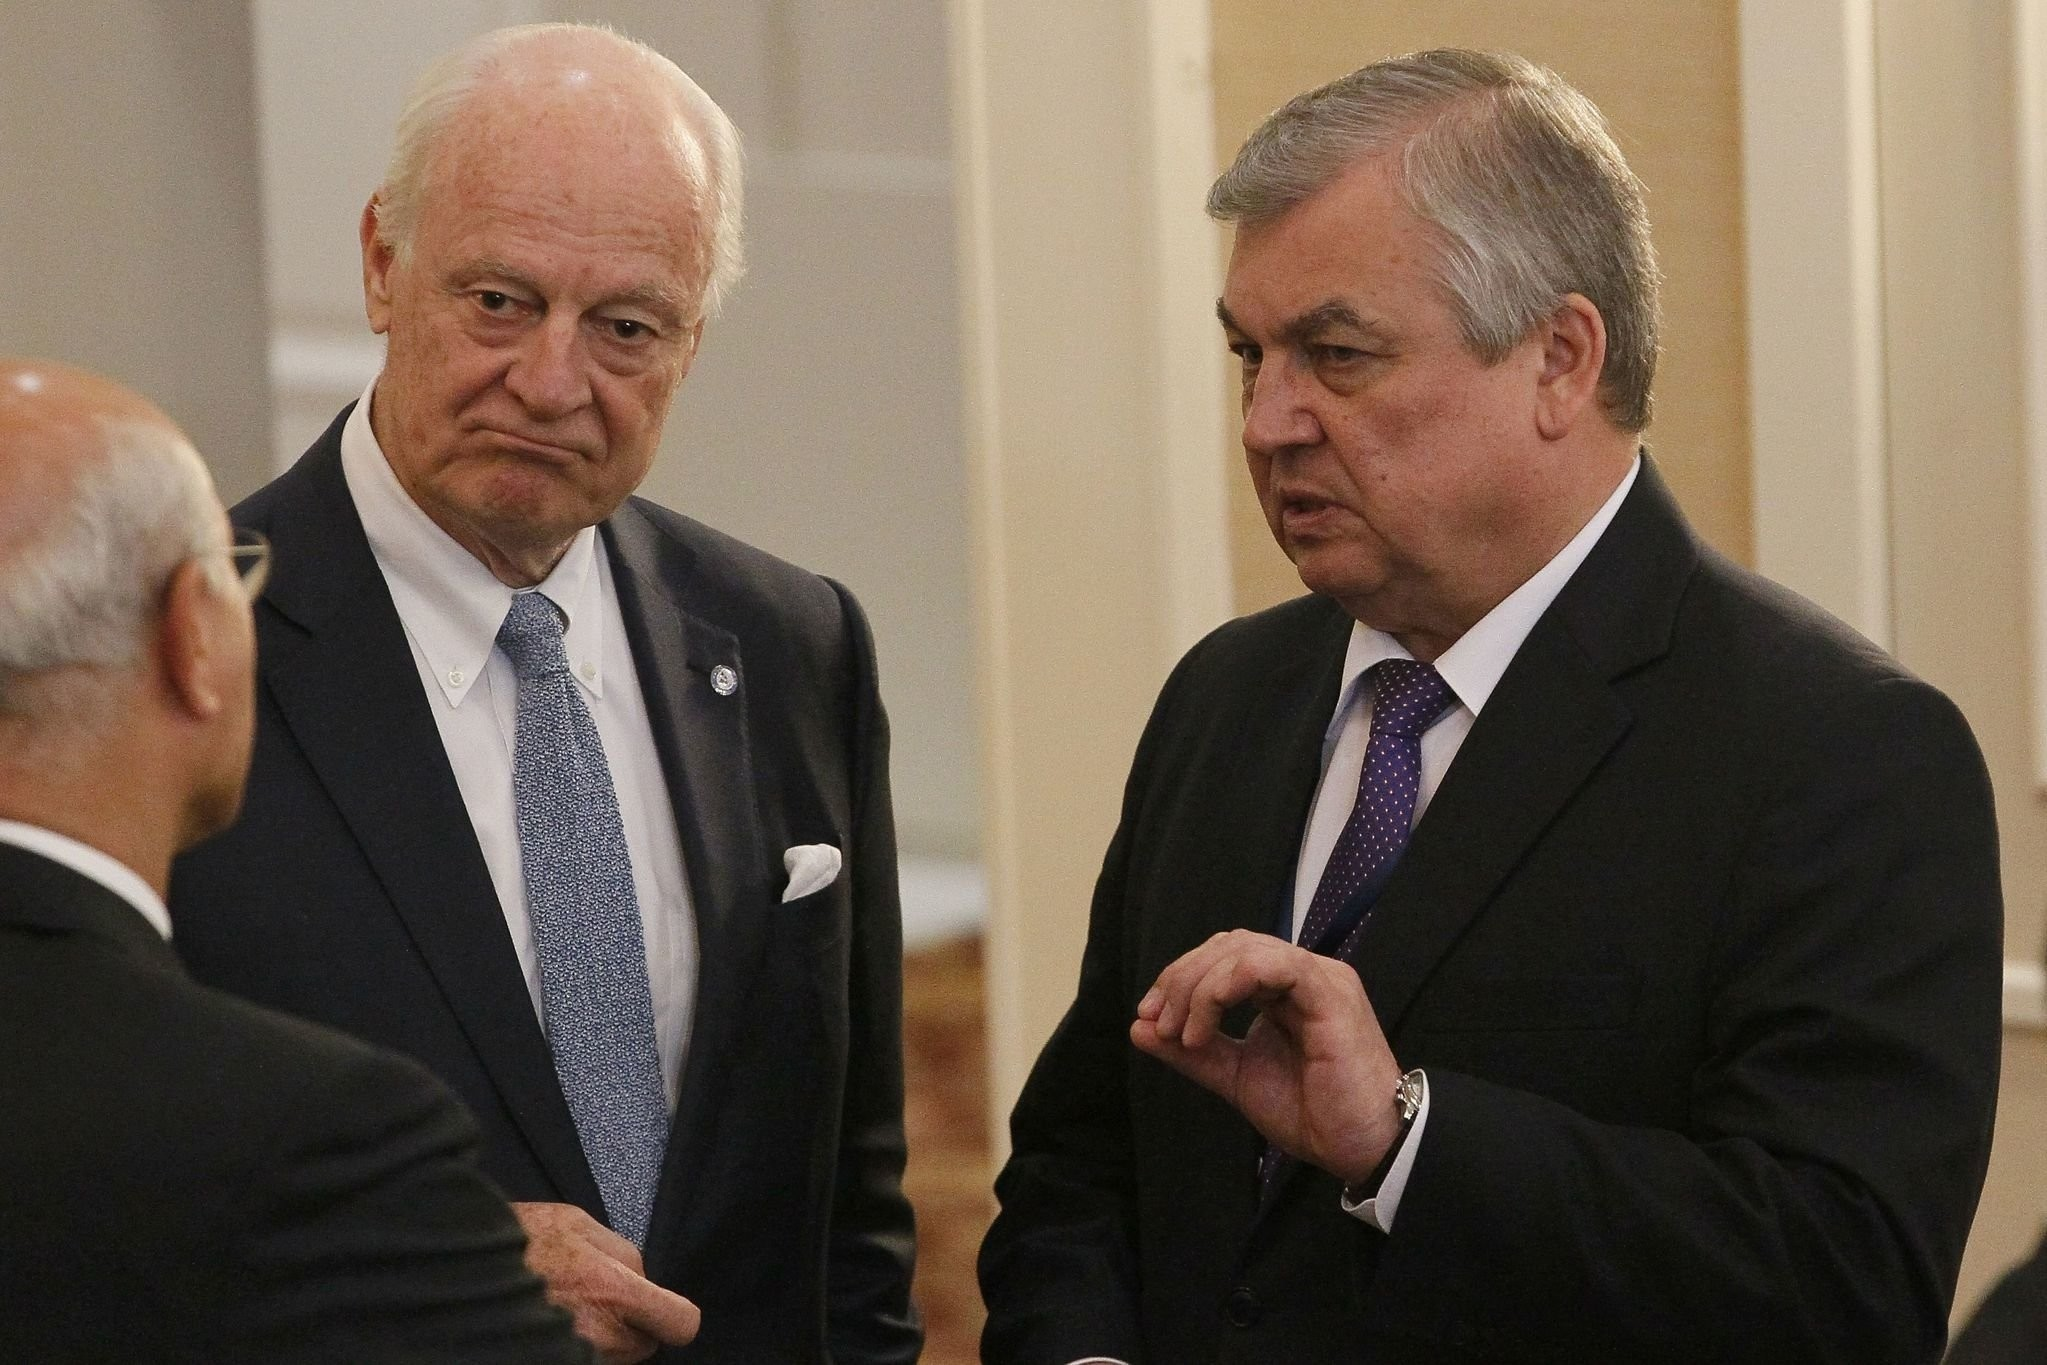 UN Special Envoy for Syria Staffan de Mistura (L) and Russian mediator Alexander Lavrentiev attend the fourth round of Syria peace talks in Astana on May 4, 2017. (AFP Photo)